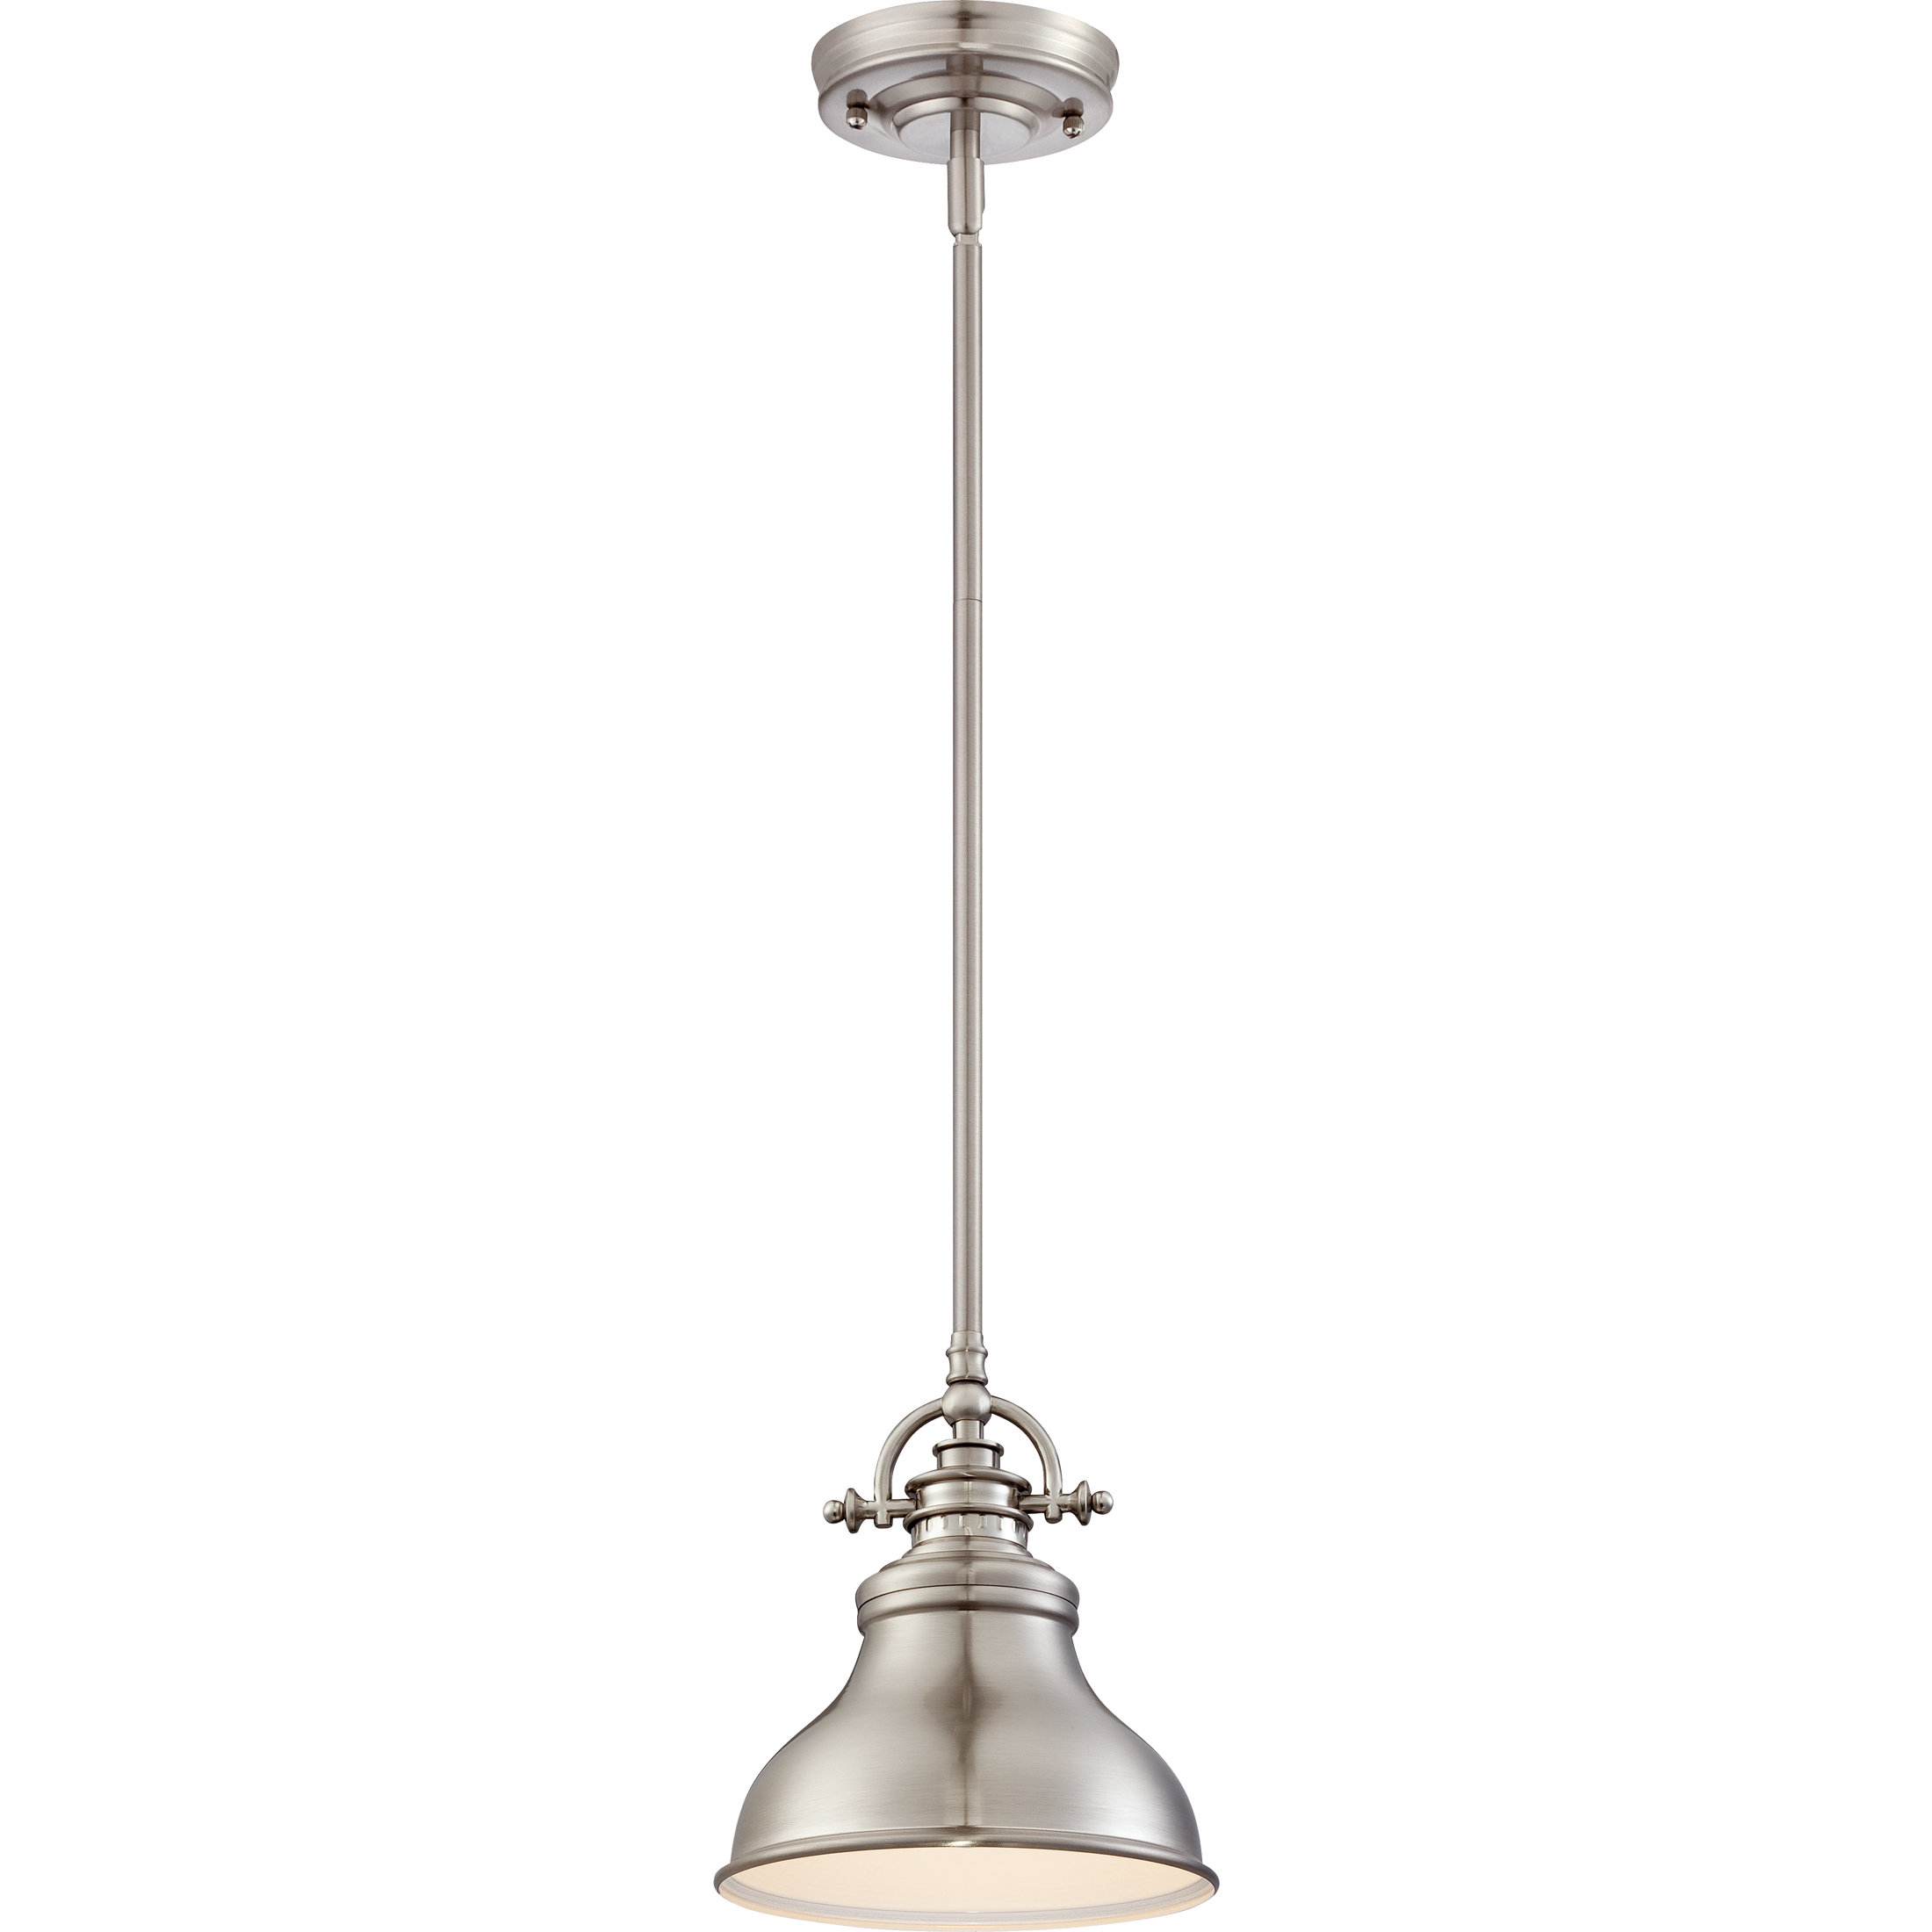 Mueller 1 Light Single Dome Pendants Pertaining To Widely Used Beachcrest Home Mueller 1 Light Single Dome Pendant (Gallery 4 of 20)